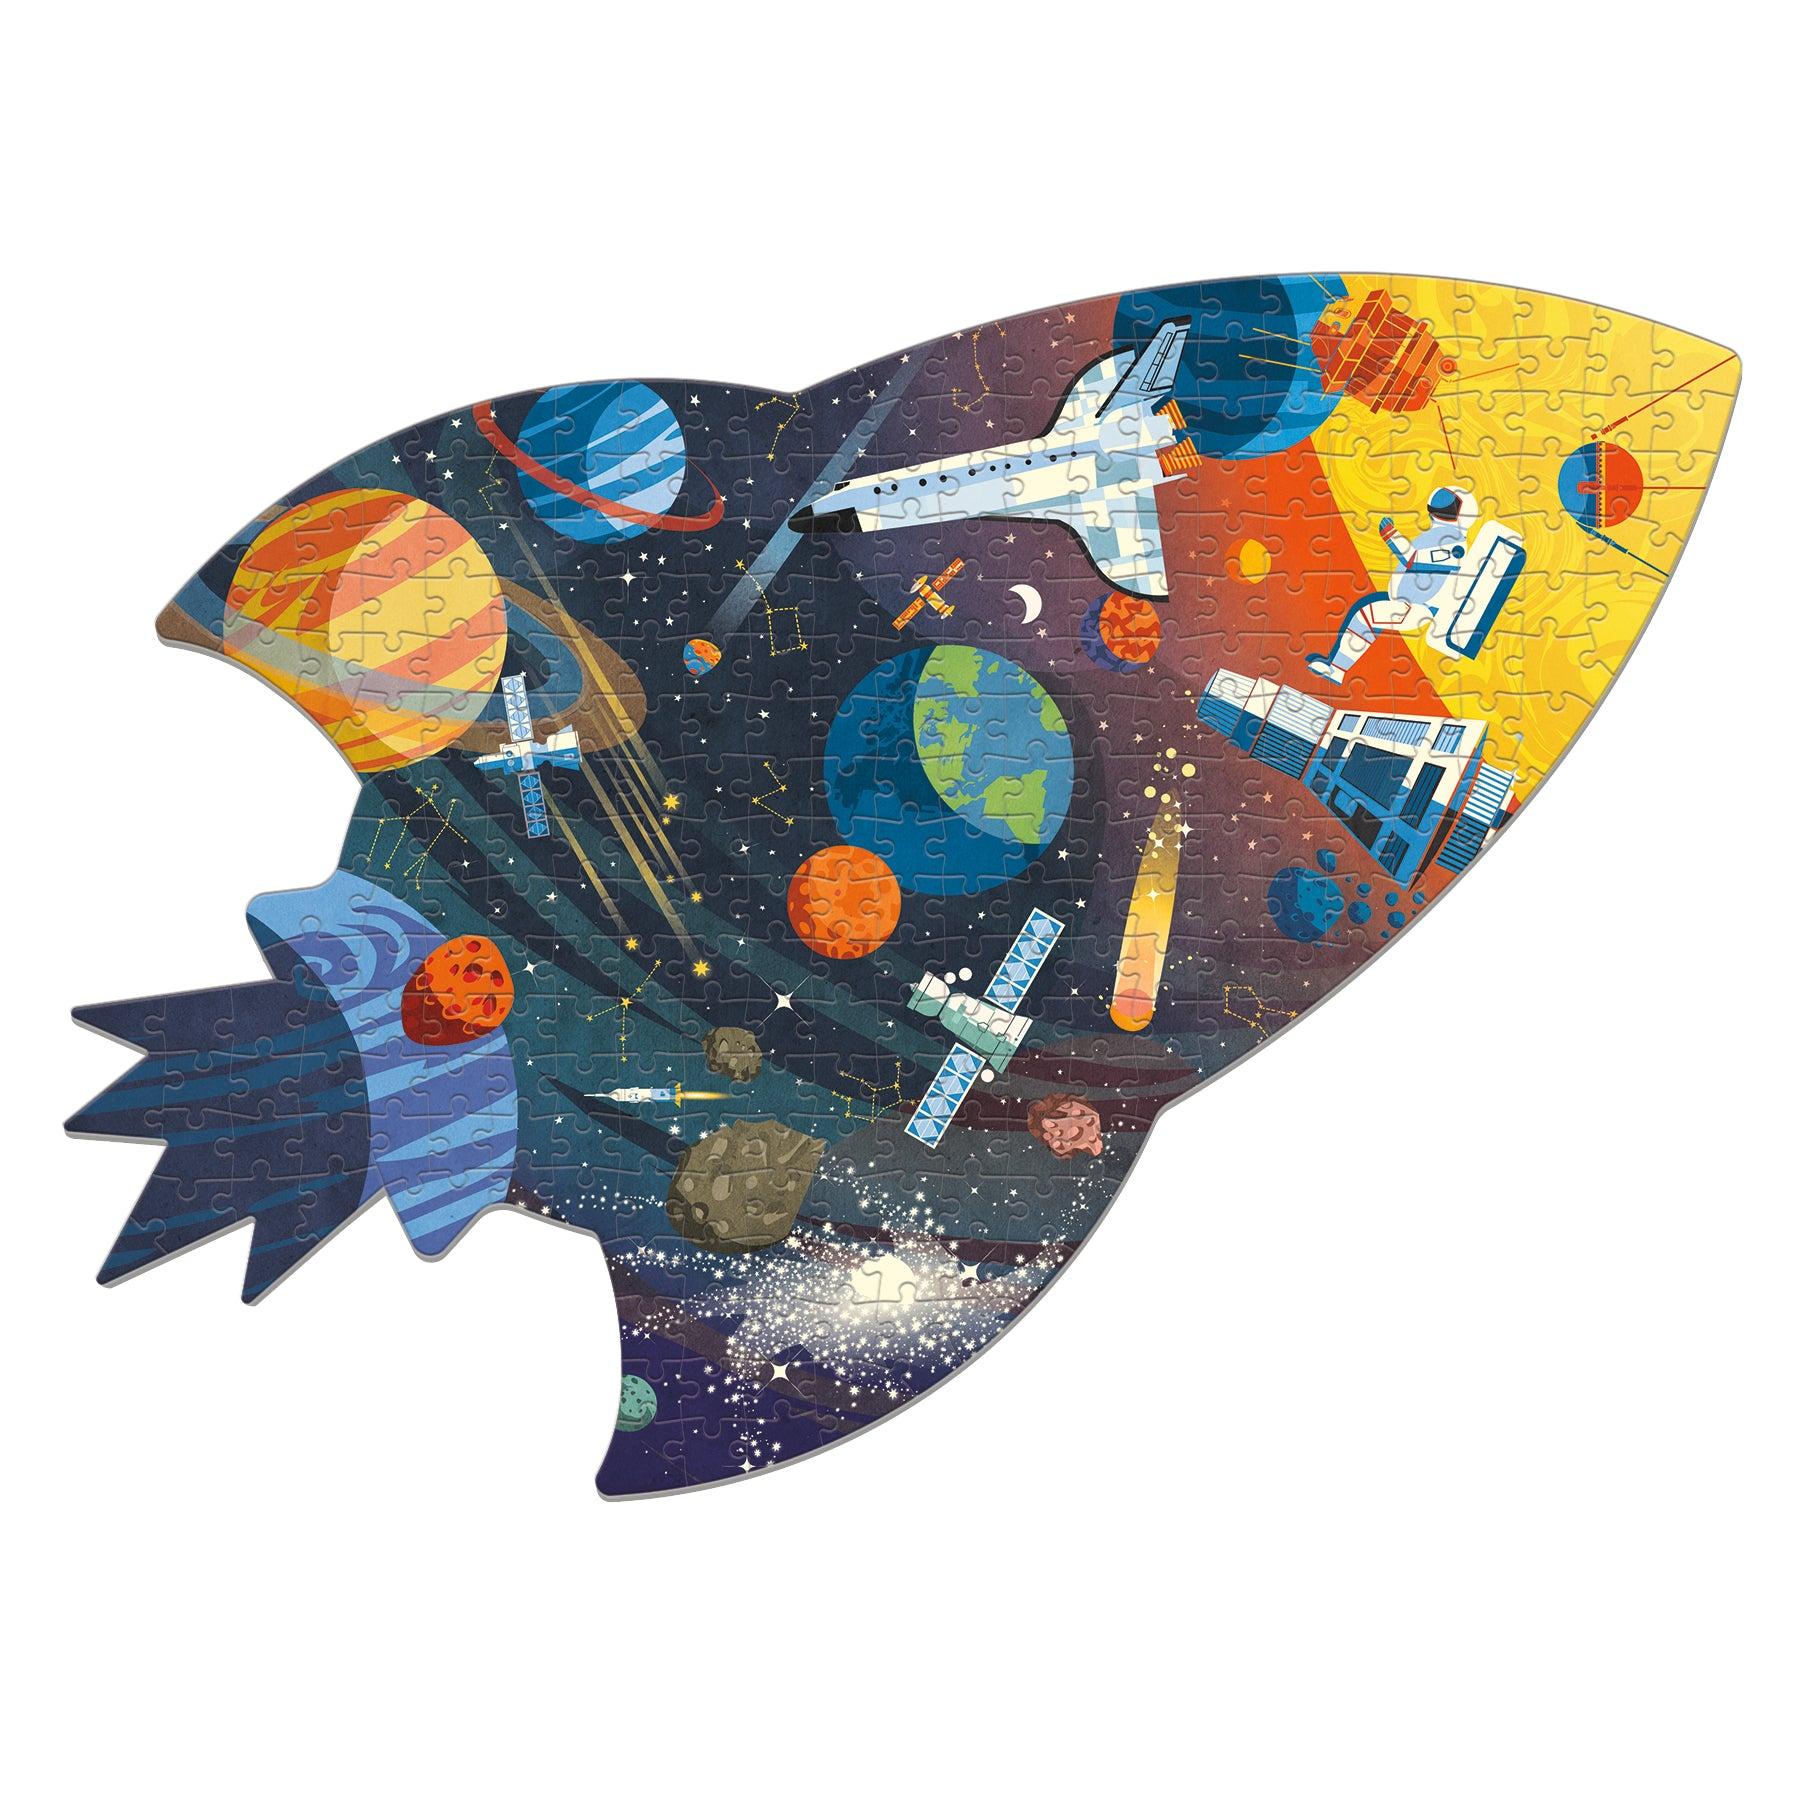 outer space shaped puzzle - 300 piece